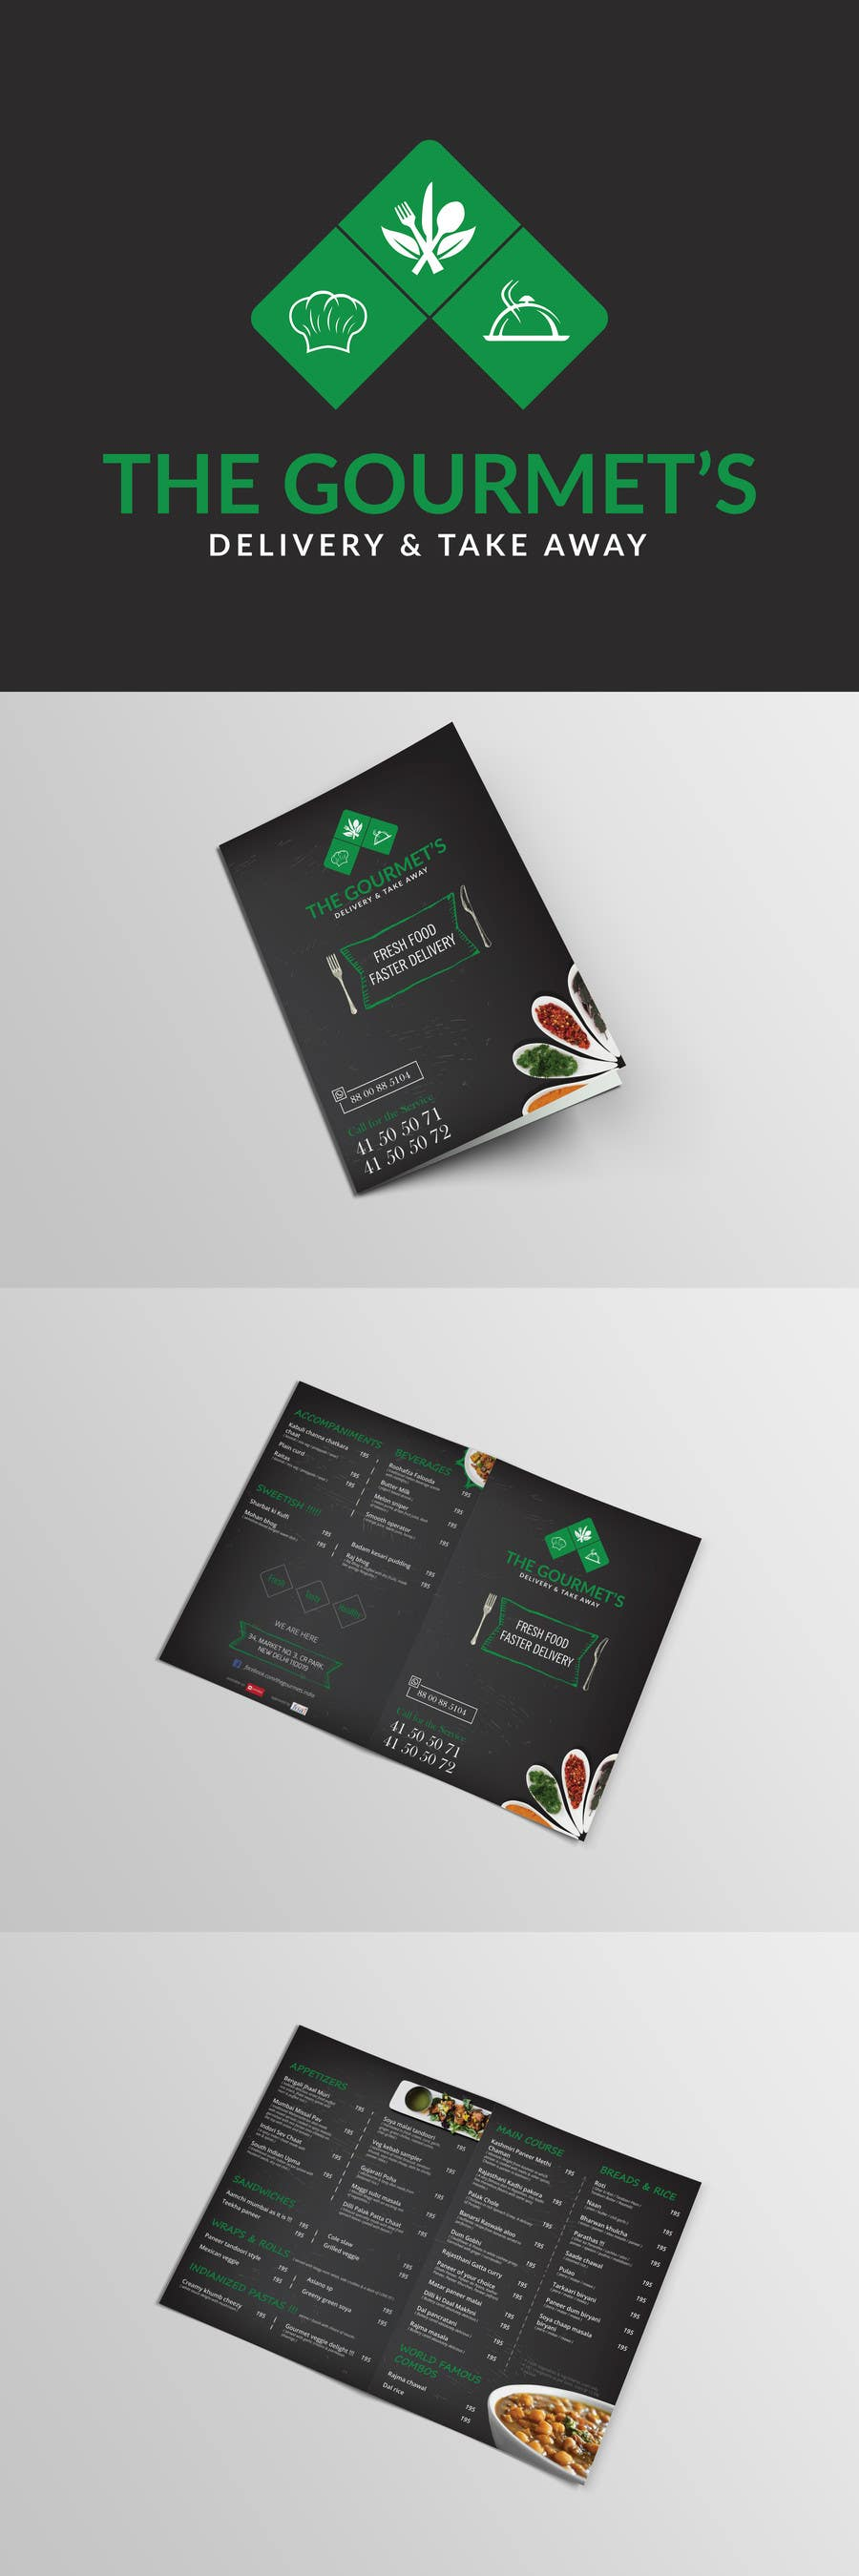 Graphic Design Creative Brief About Your Own Work